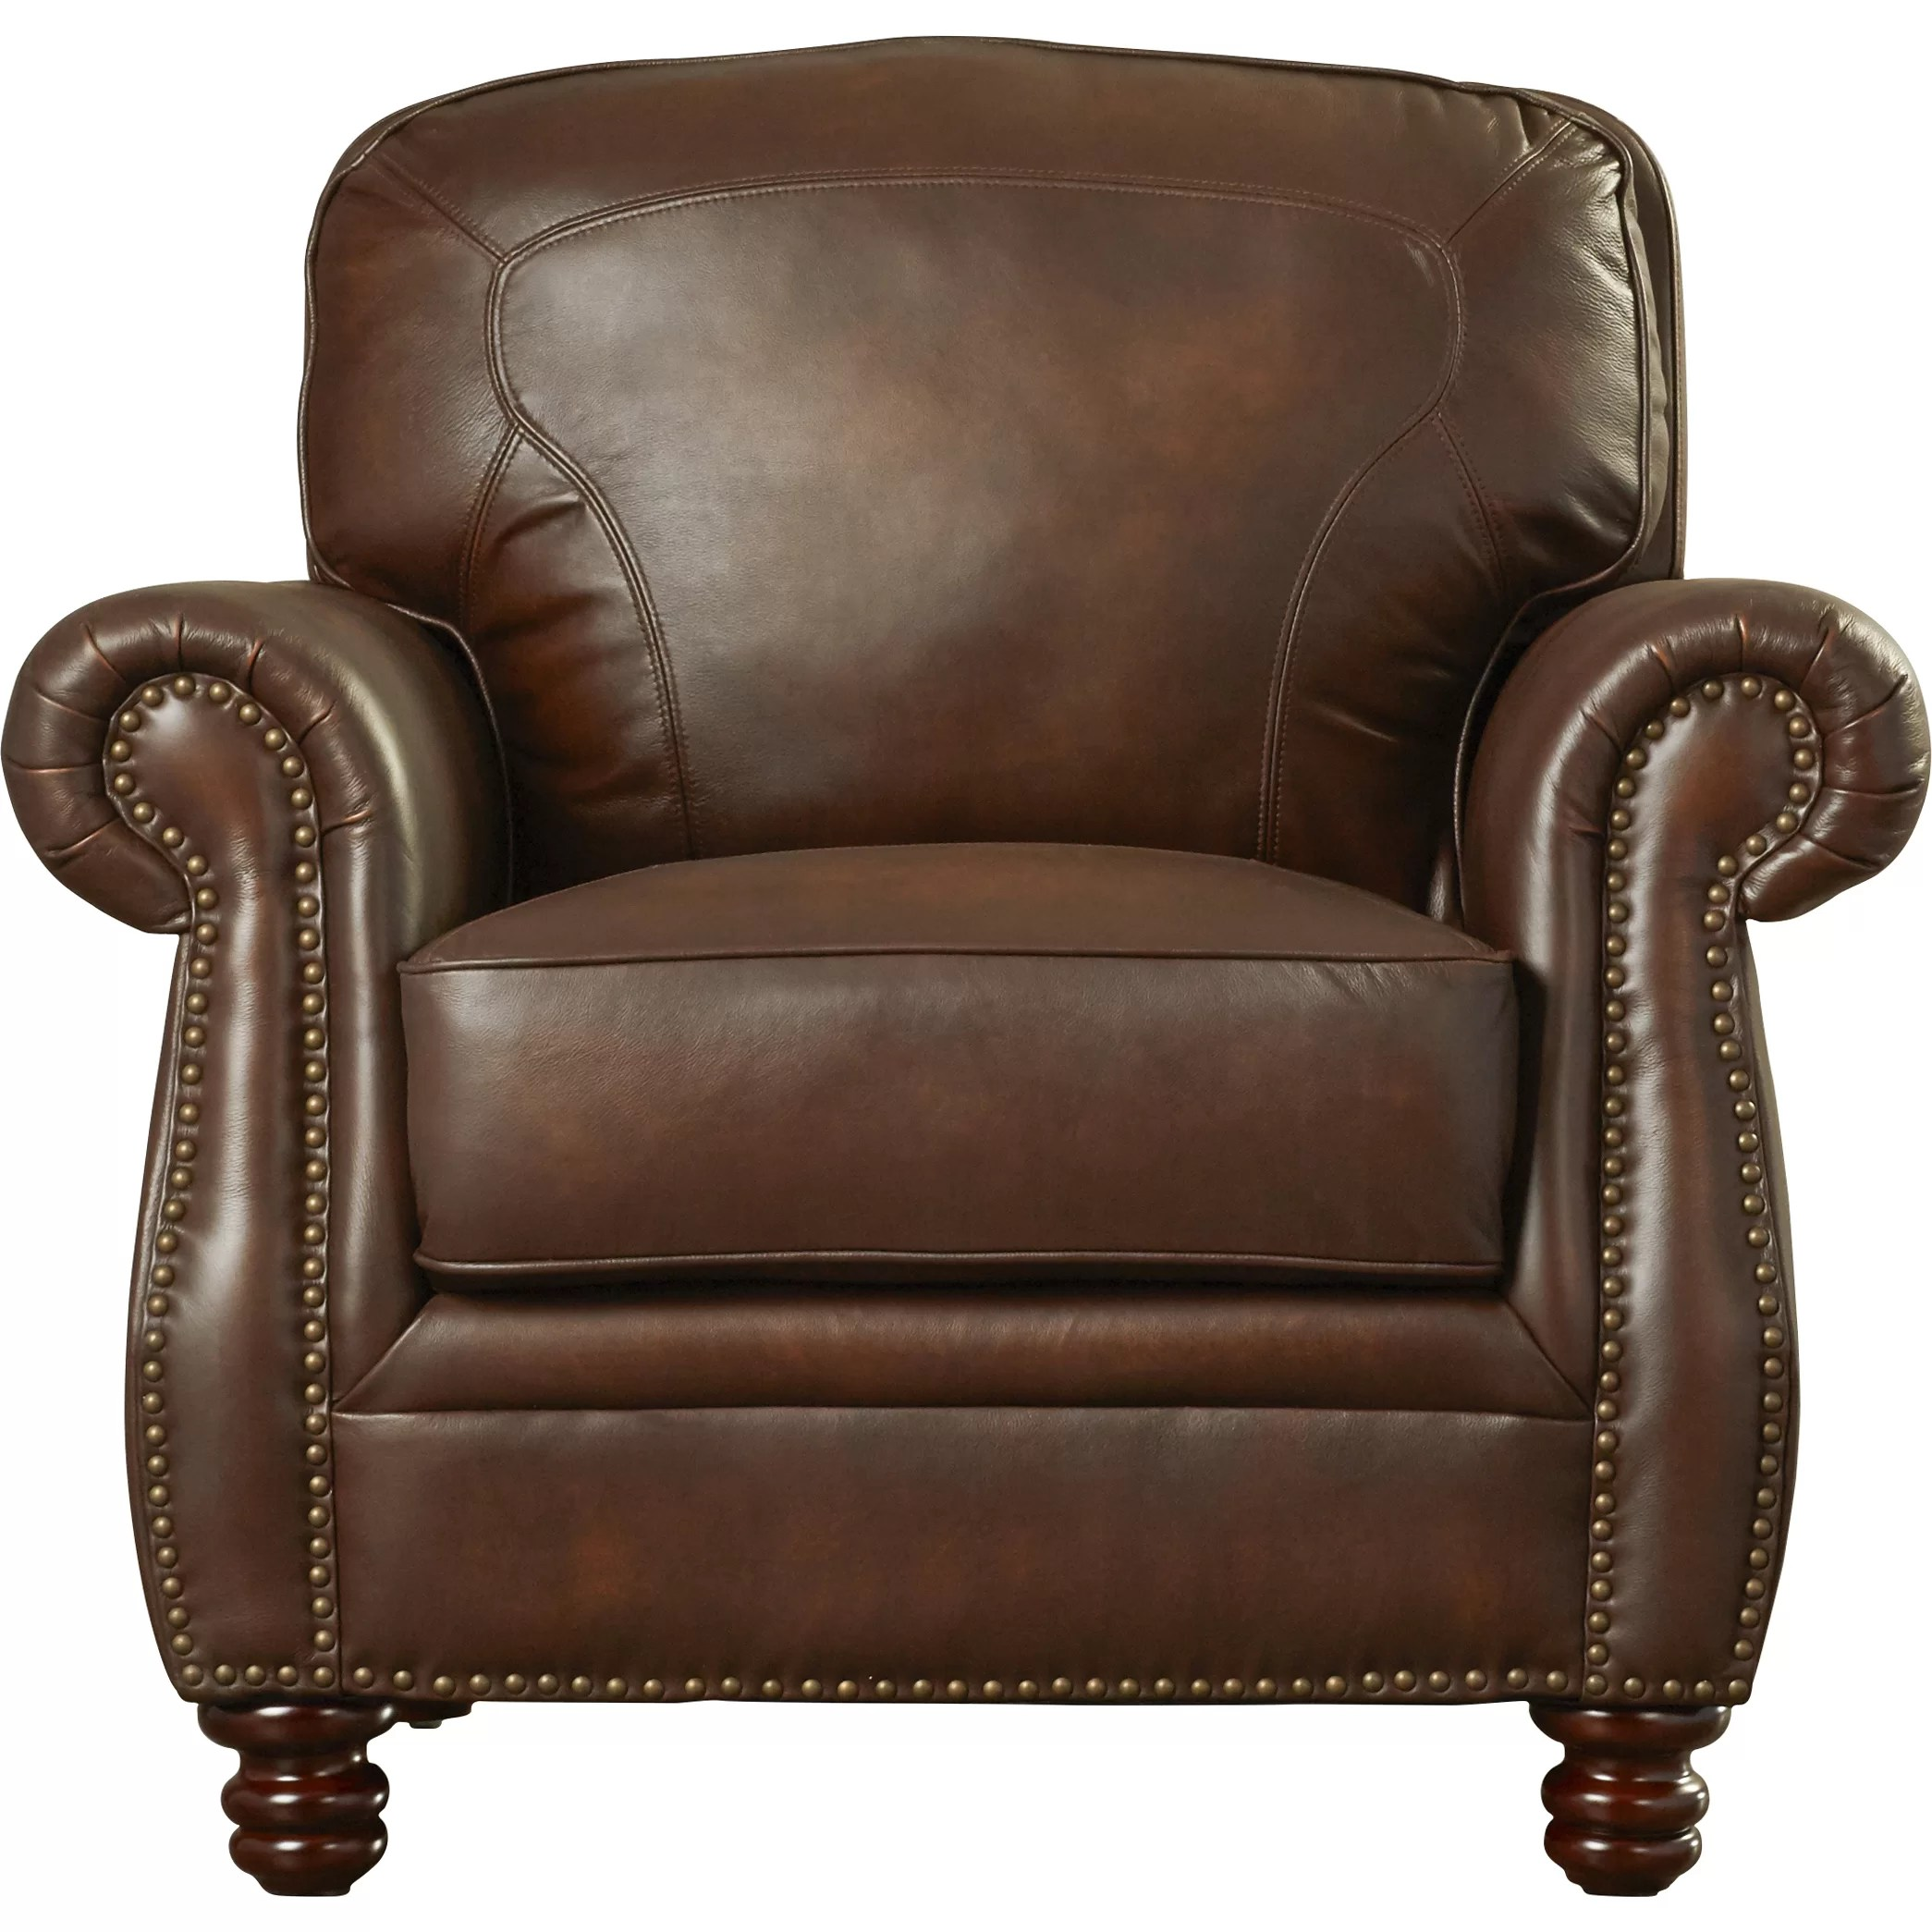 Club Chair Leather Rosalind Wheeler Mcdonnell Leather Club Chair And Reviews